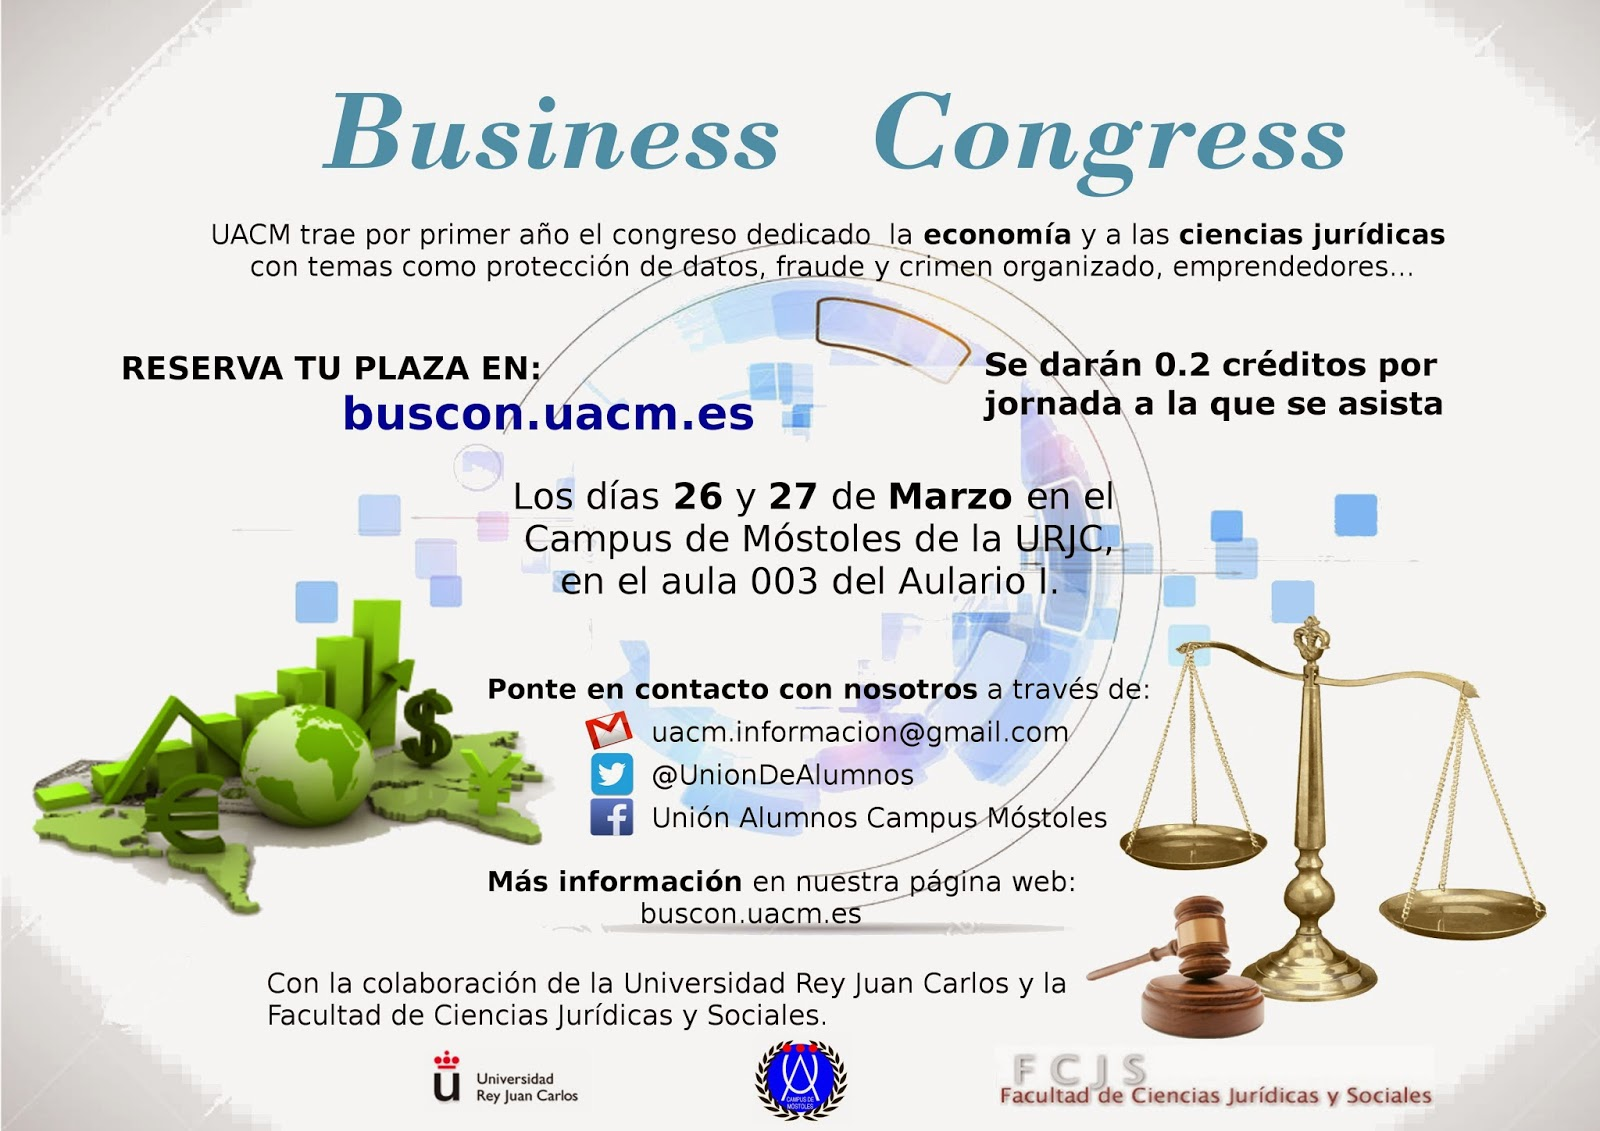 Business Congress